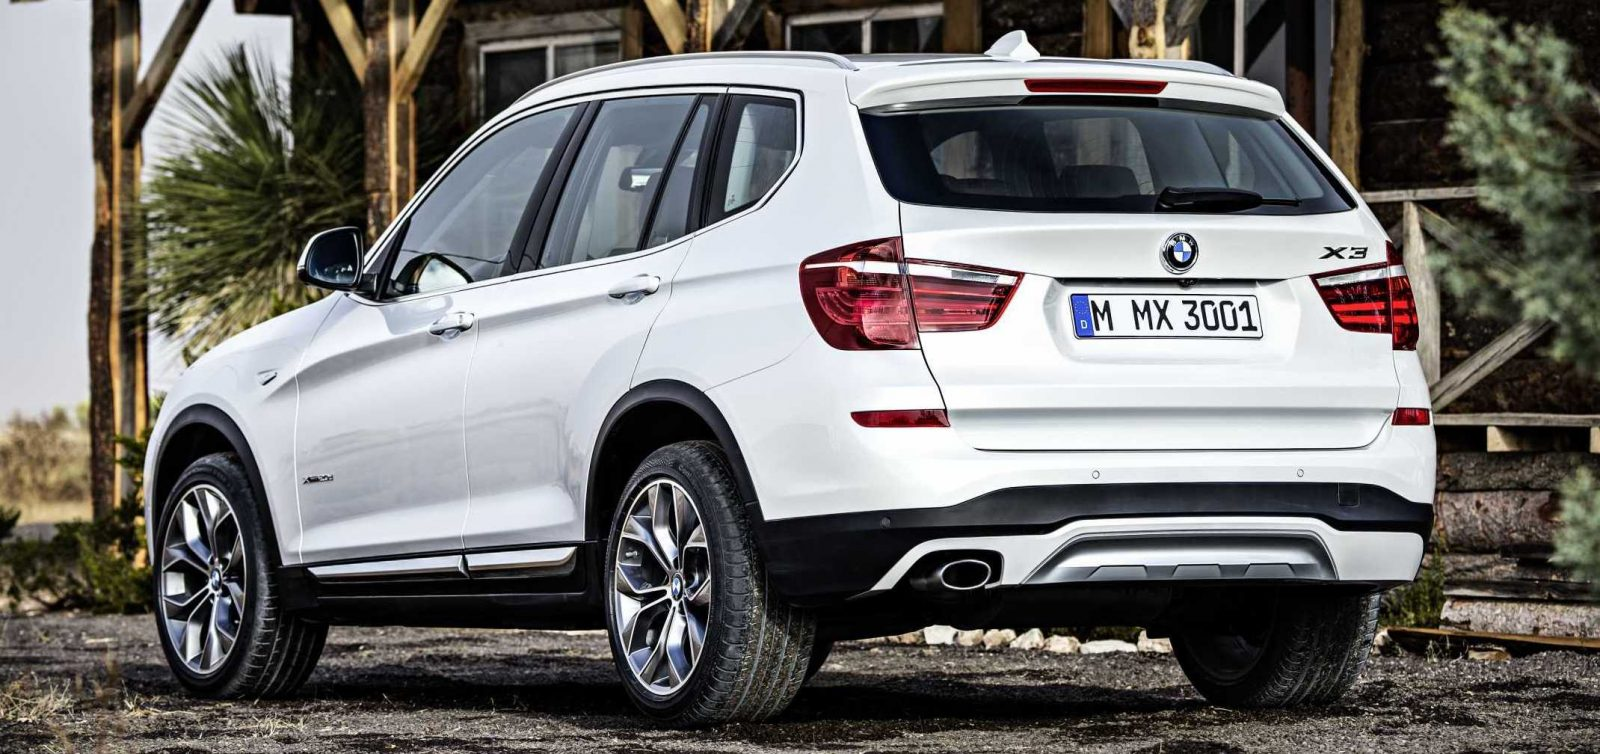 2015 bmw x3 xline vs m sport pricing specs with 100 new. Black Bedroom Furniture Sets. Home Design Ideas